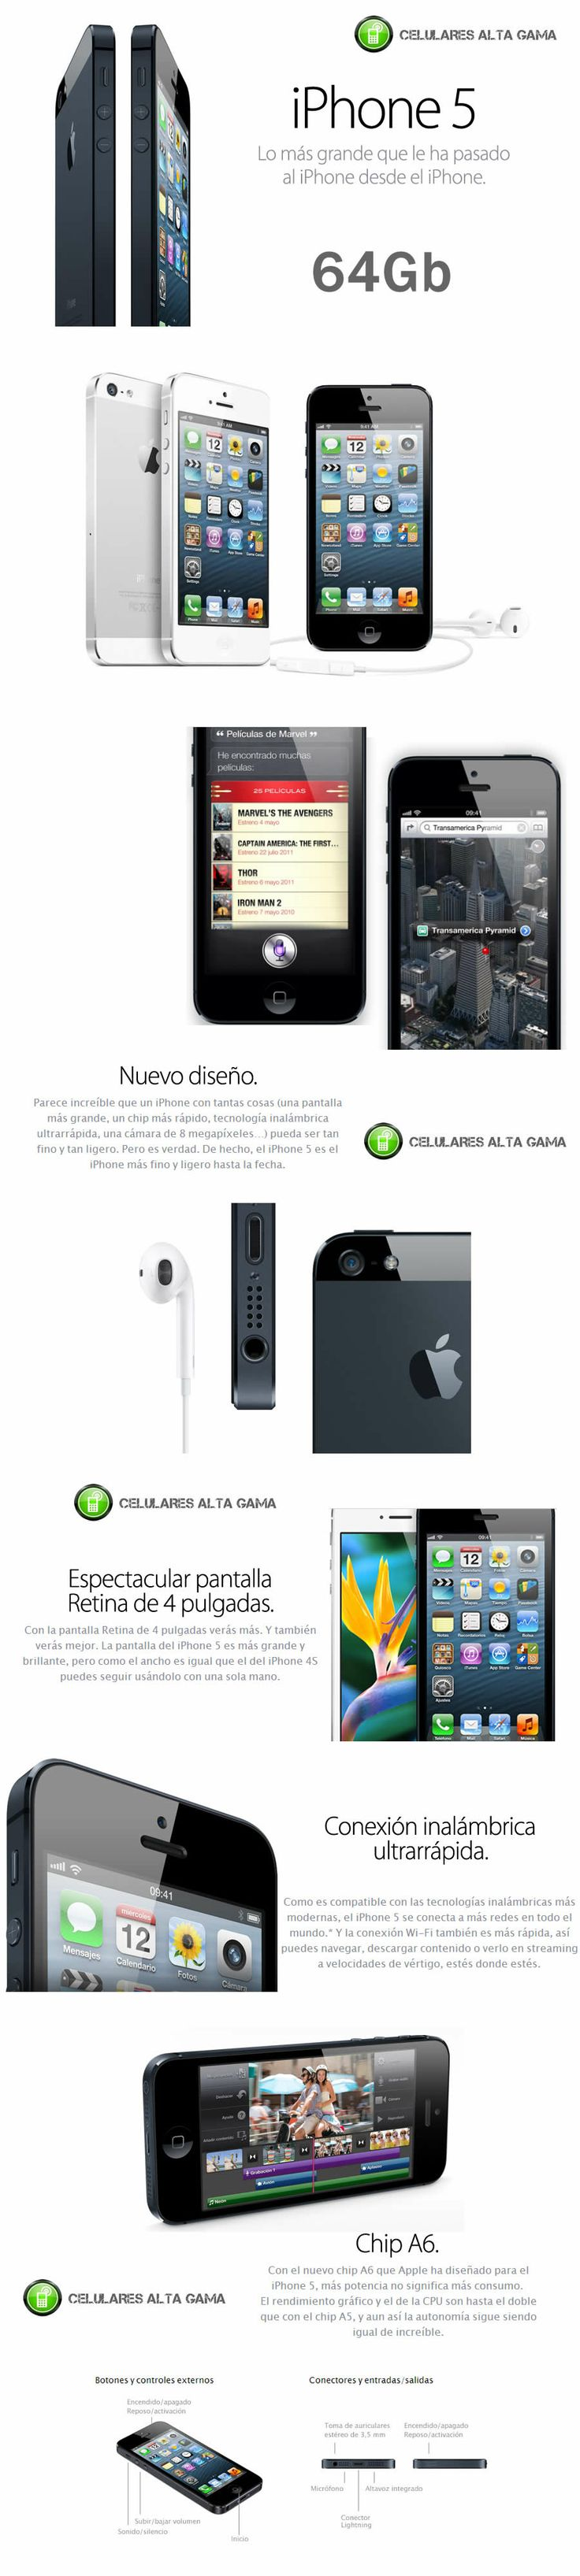 comprar iphone 5 libre 64gb / venta iphone 5 en argentina